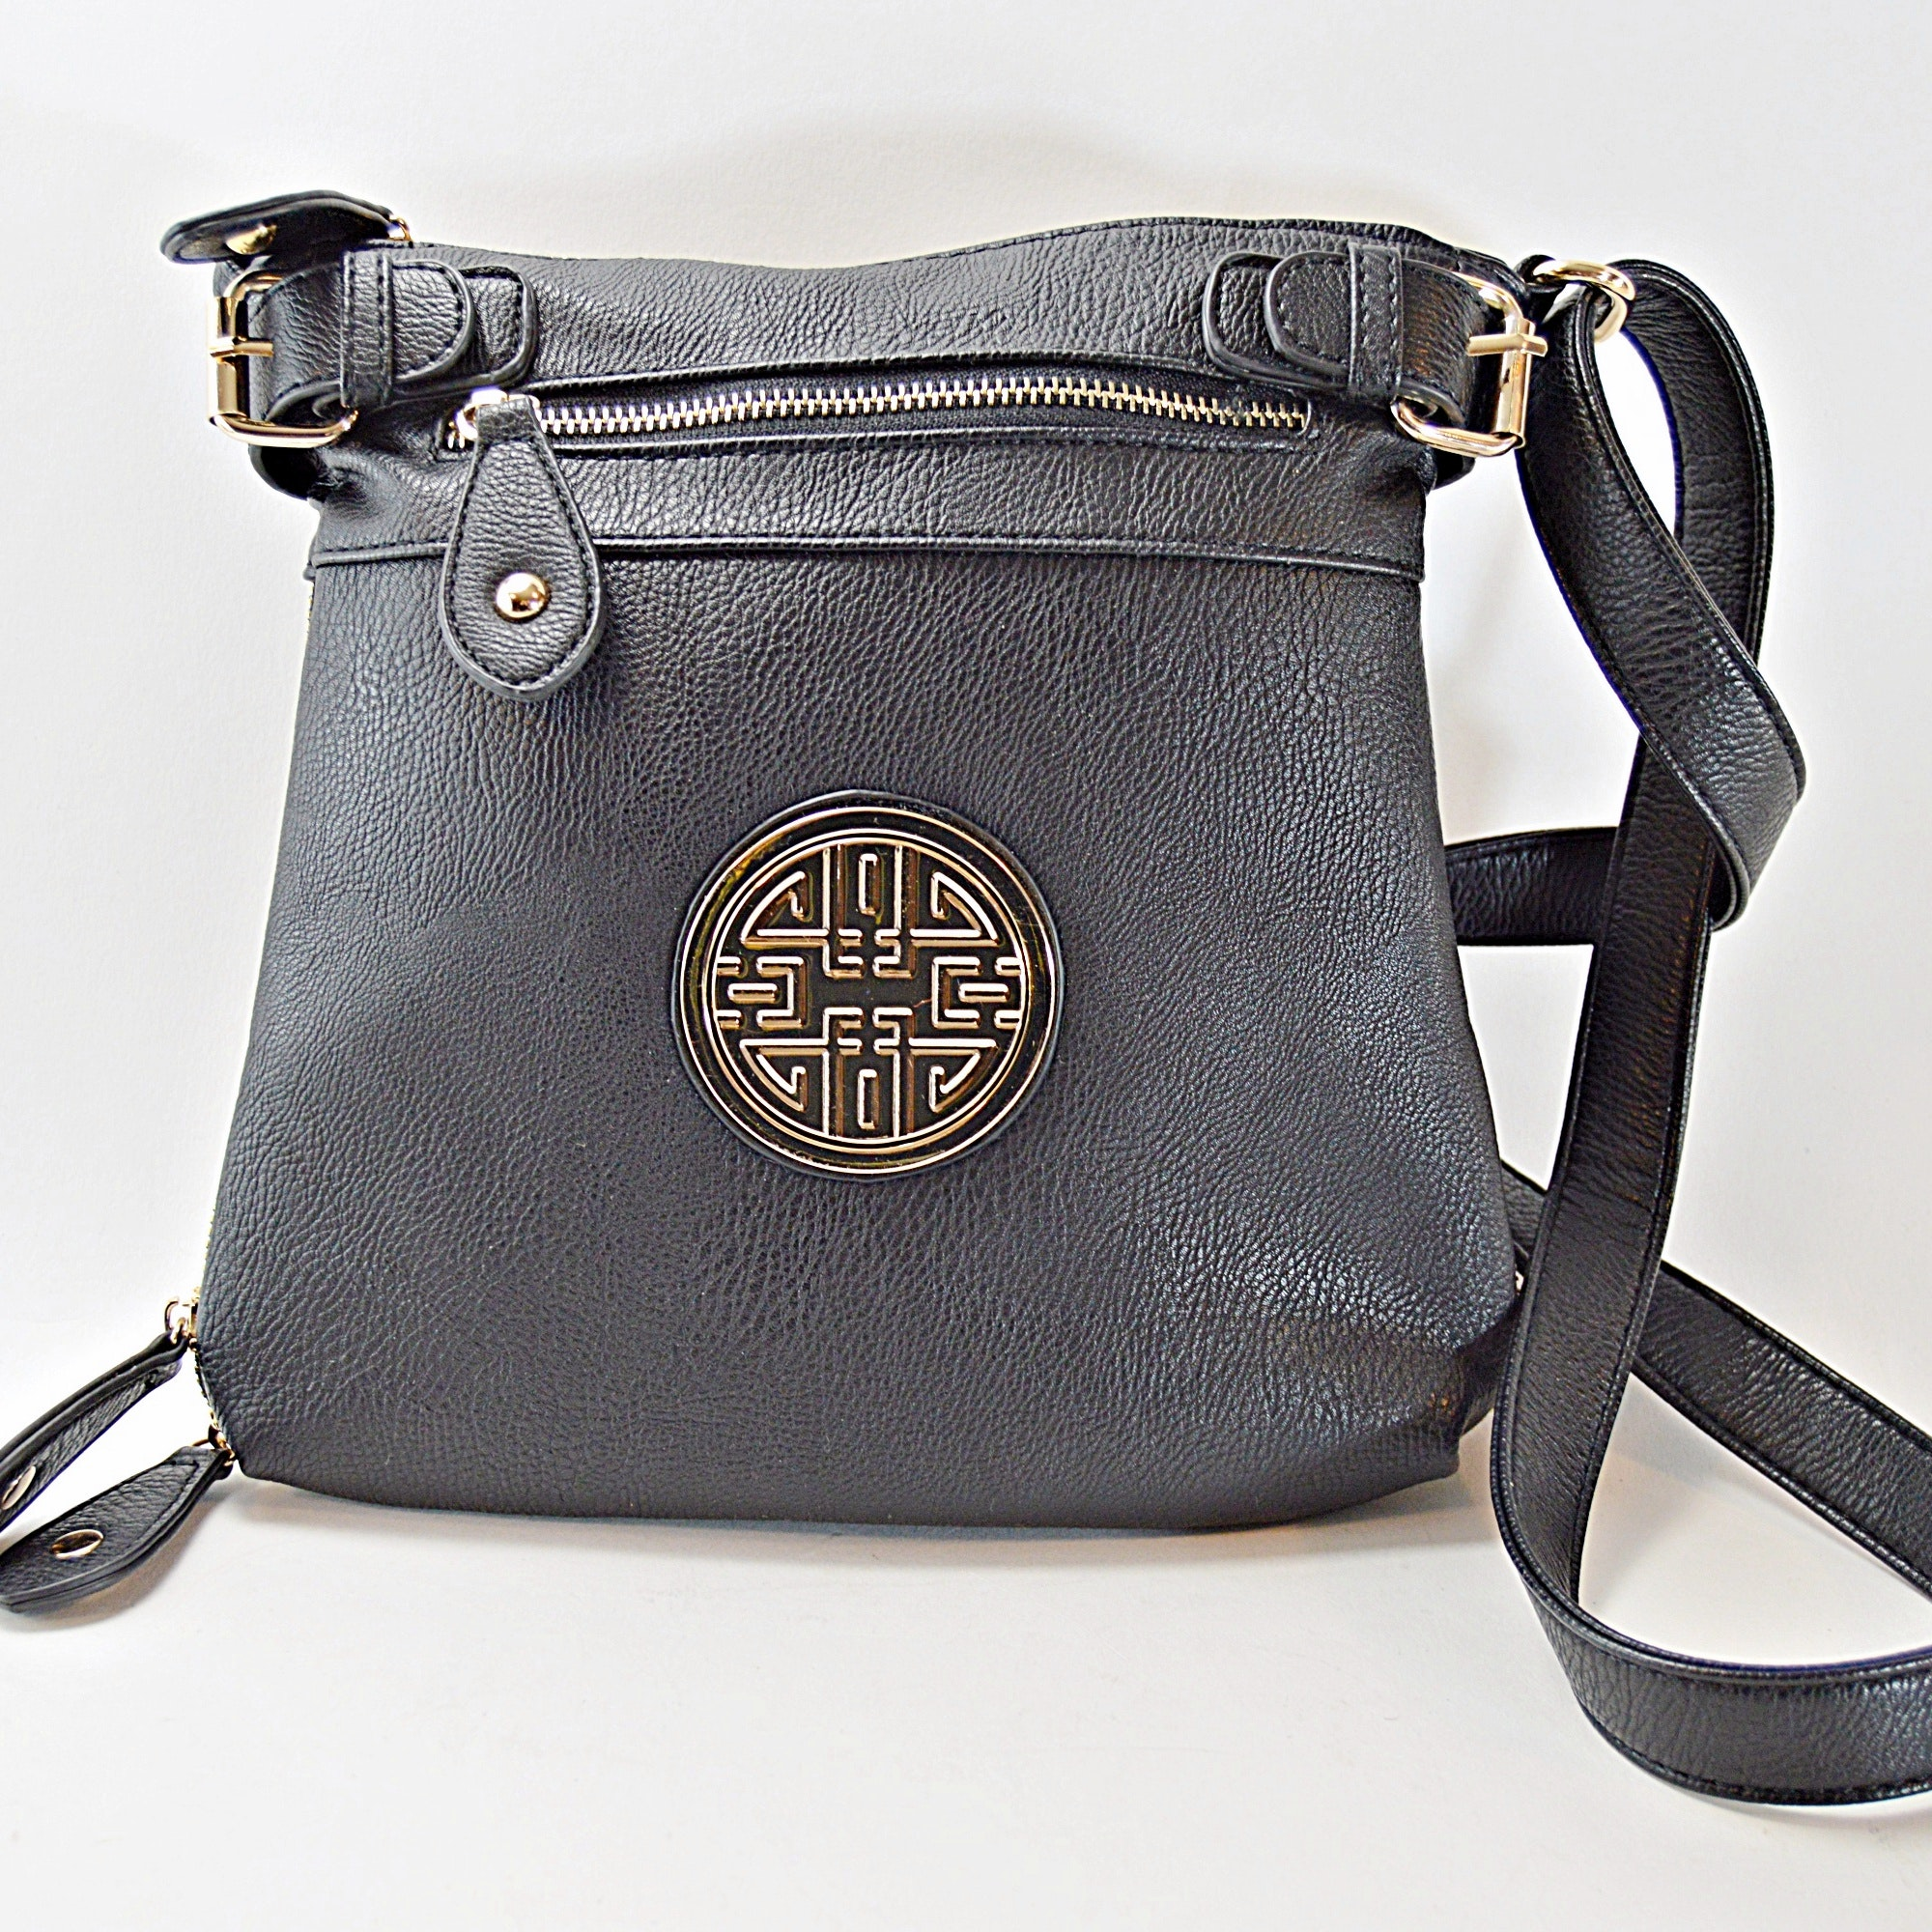 Black Leather Handbag with Asian Medallion